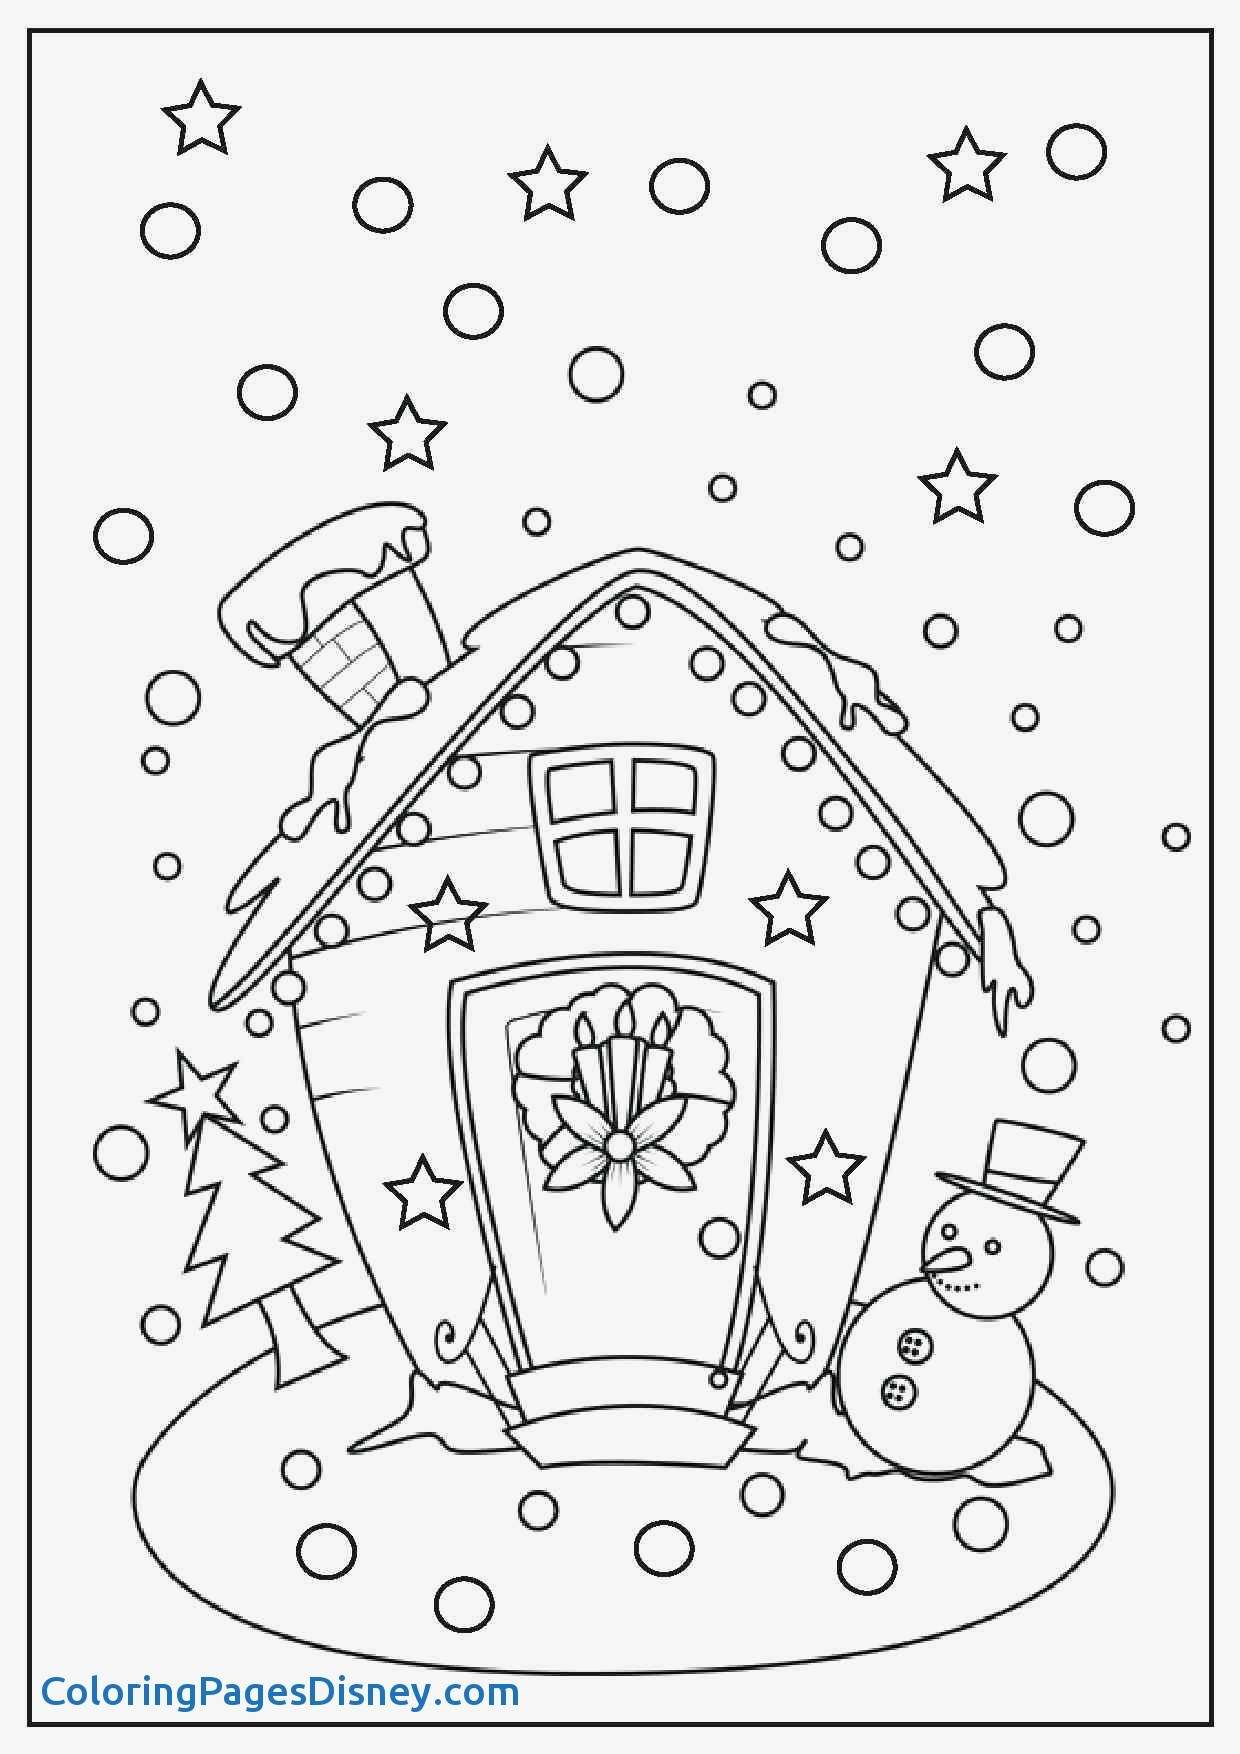 Christmas Coloring In Pictures To Print With Pages Disney